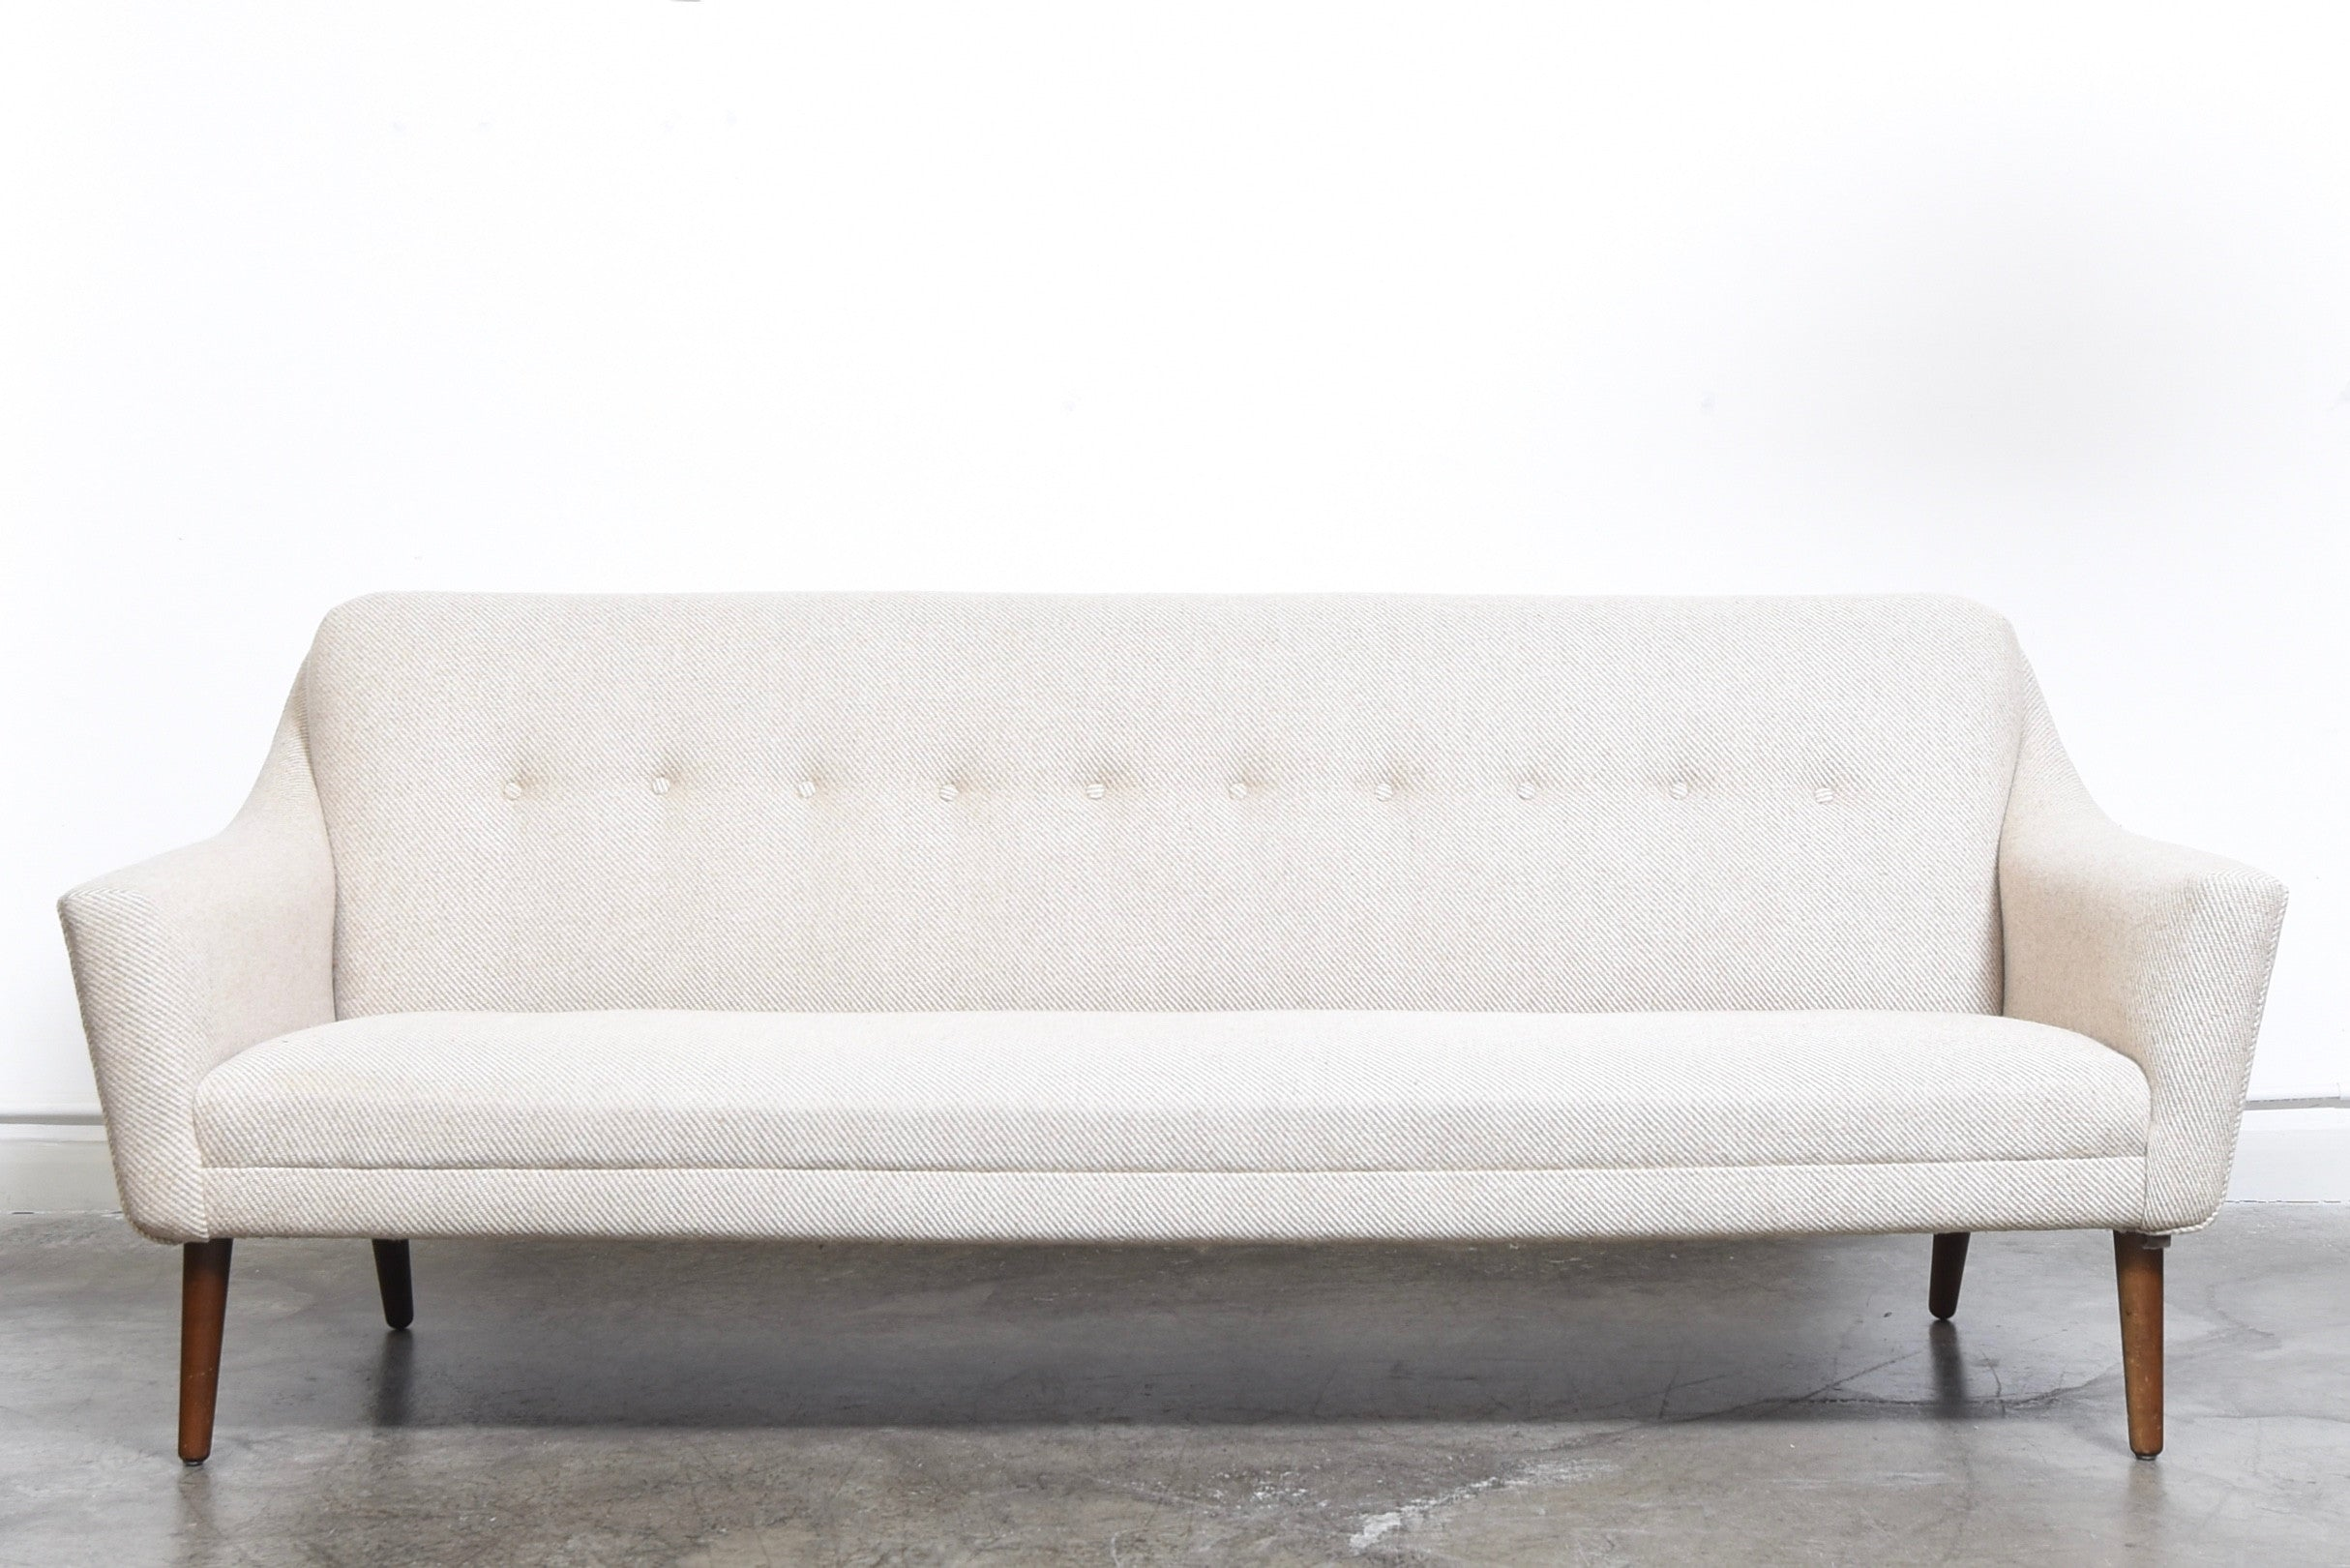 1960s three seat sofa with wool upholstery